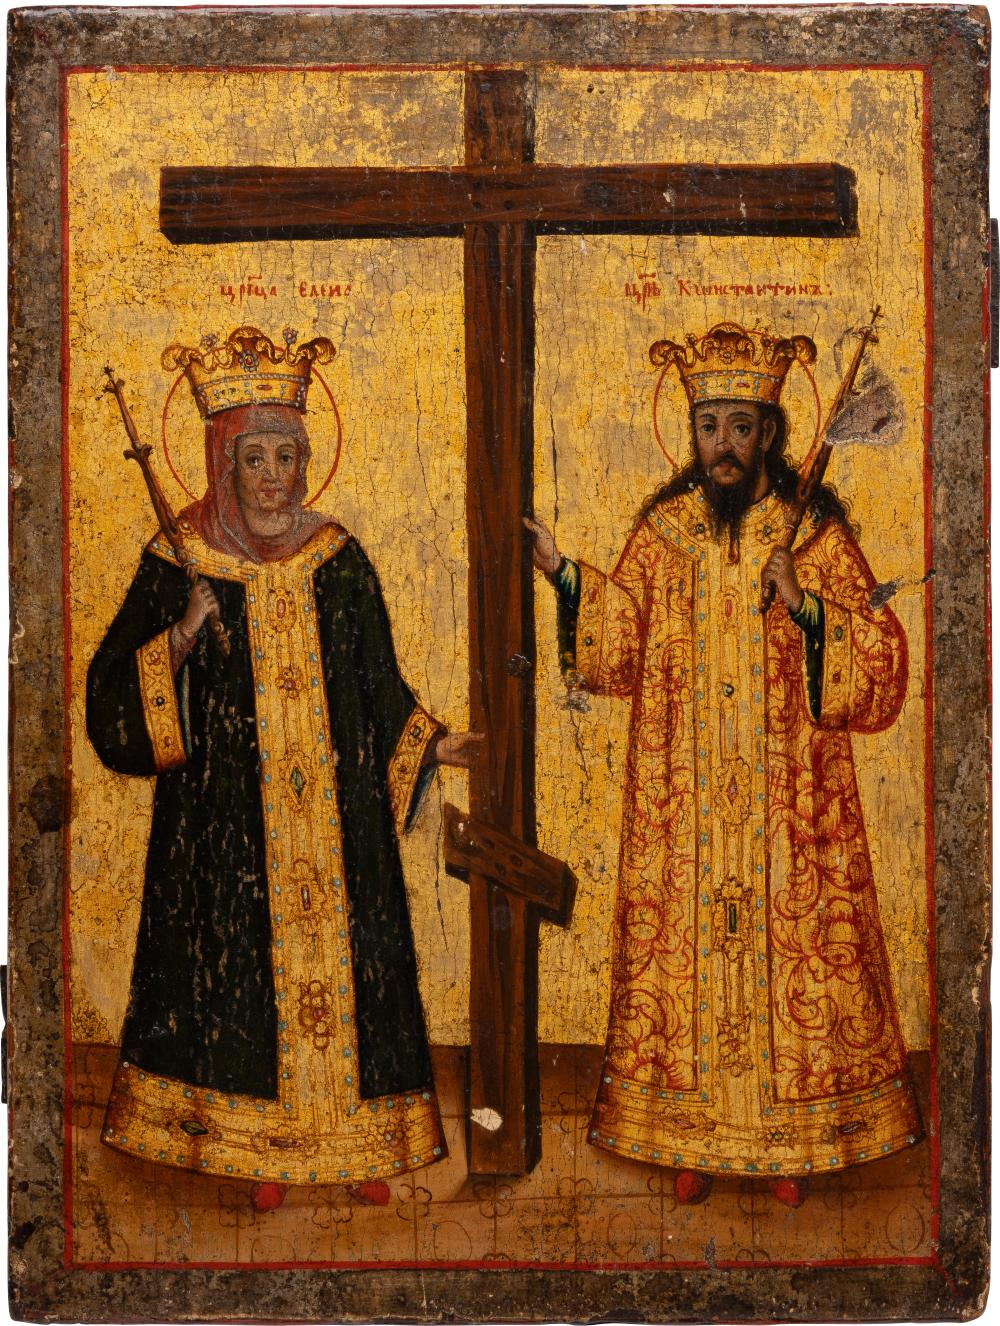 AN ICON SHOWING STS. CONSTANTINE AND HELENA